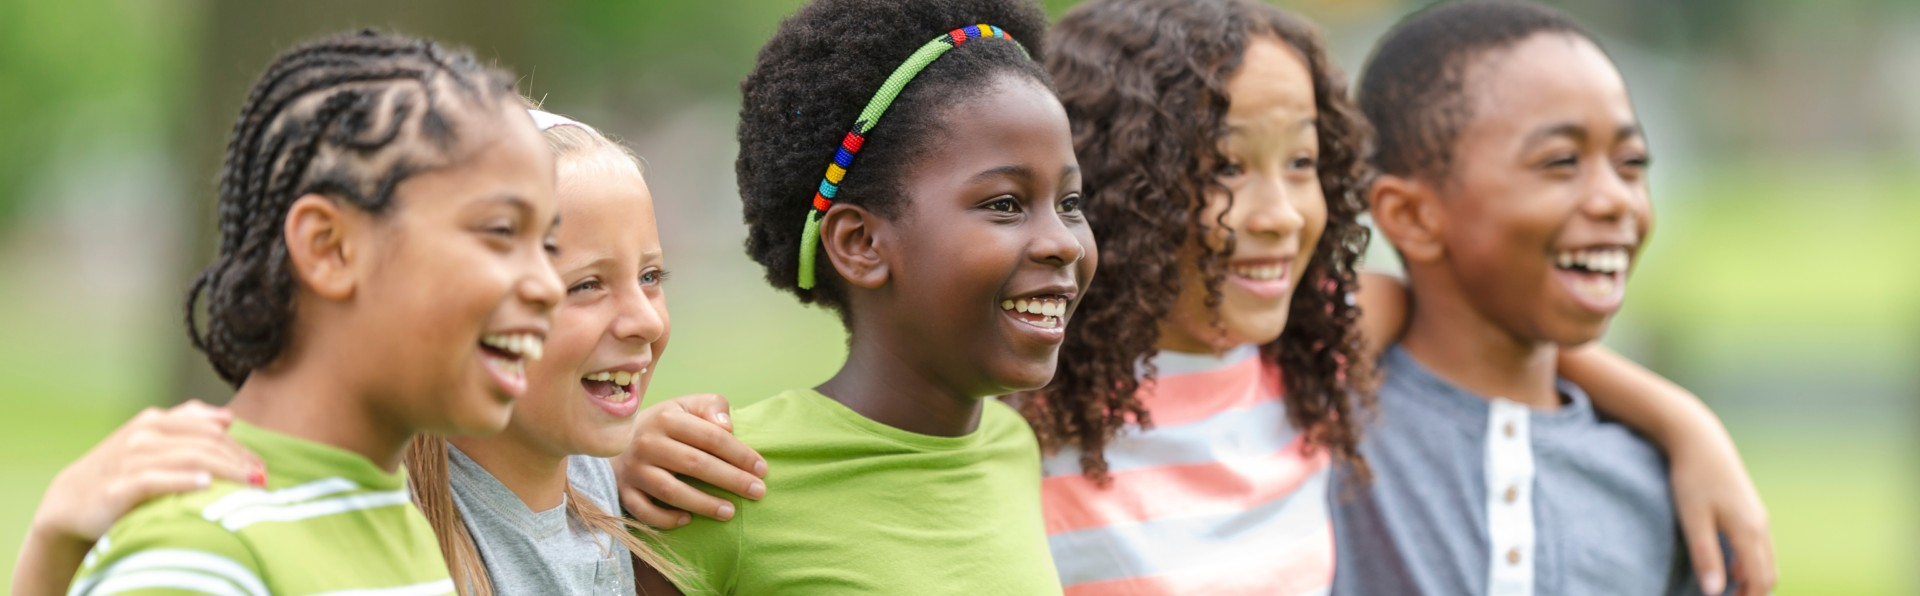 Nourishing Minds: Cultivating Wellness for Educators & Students